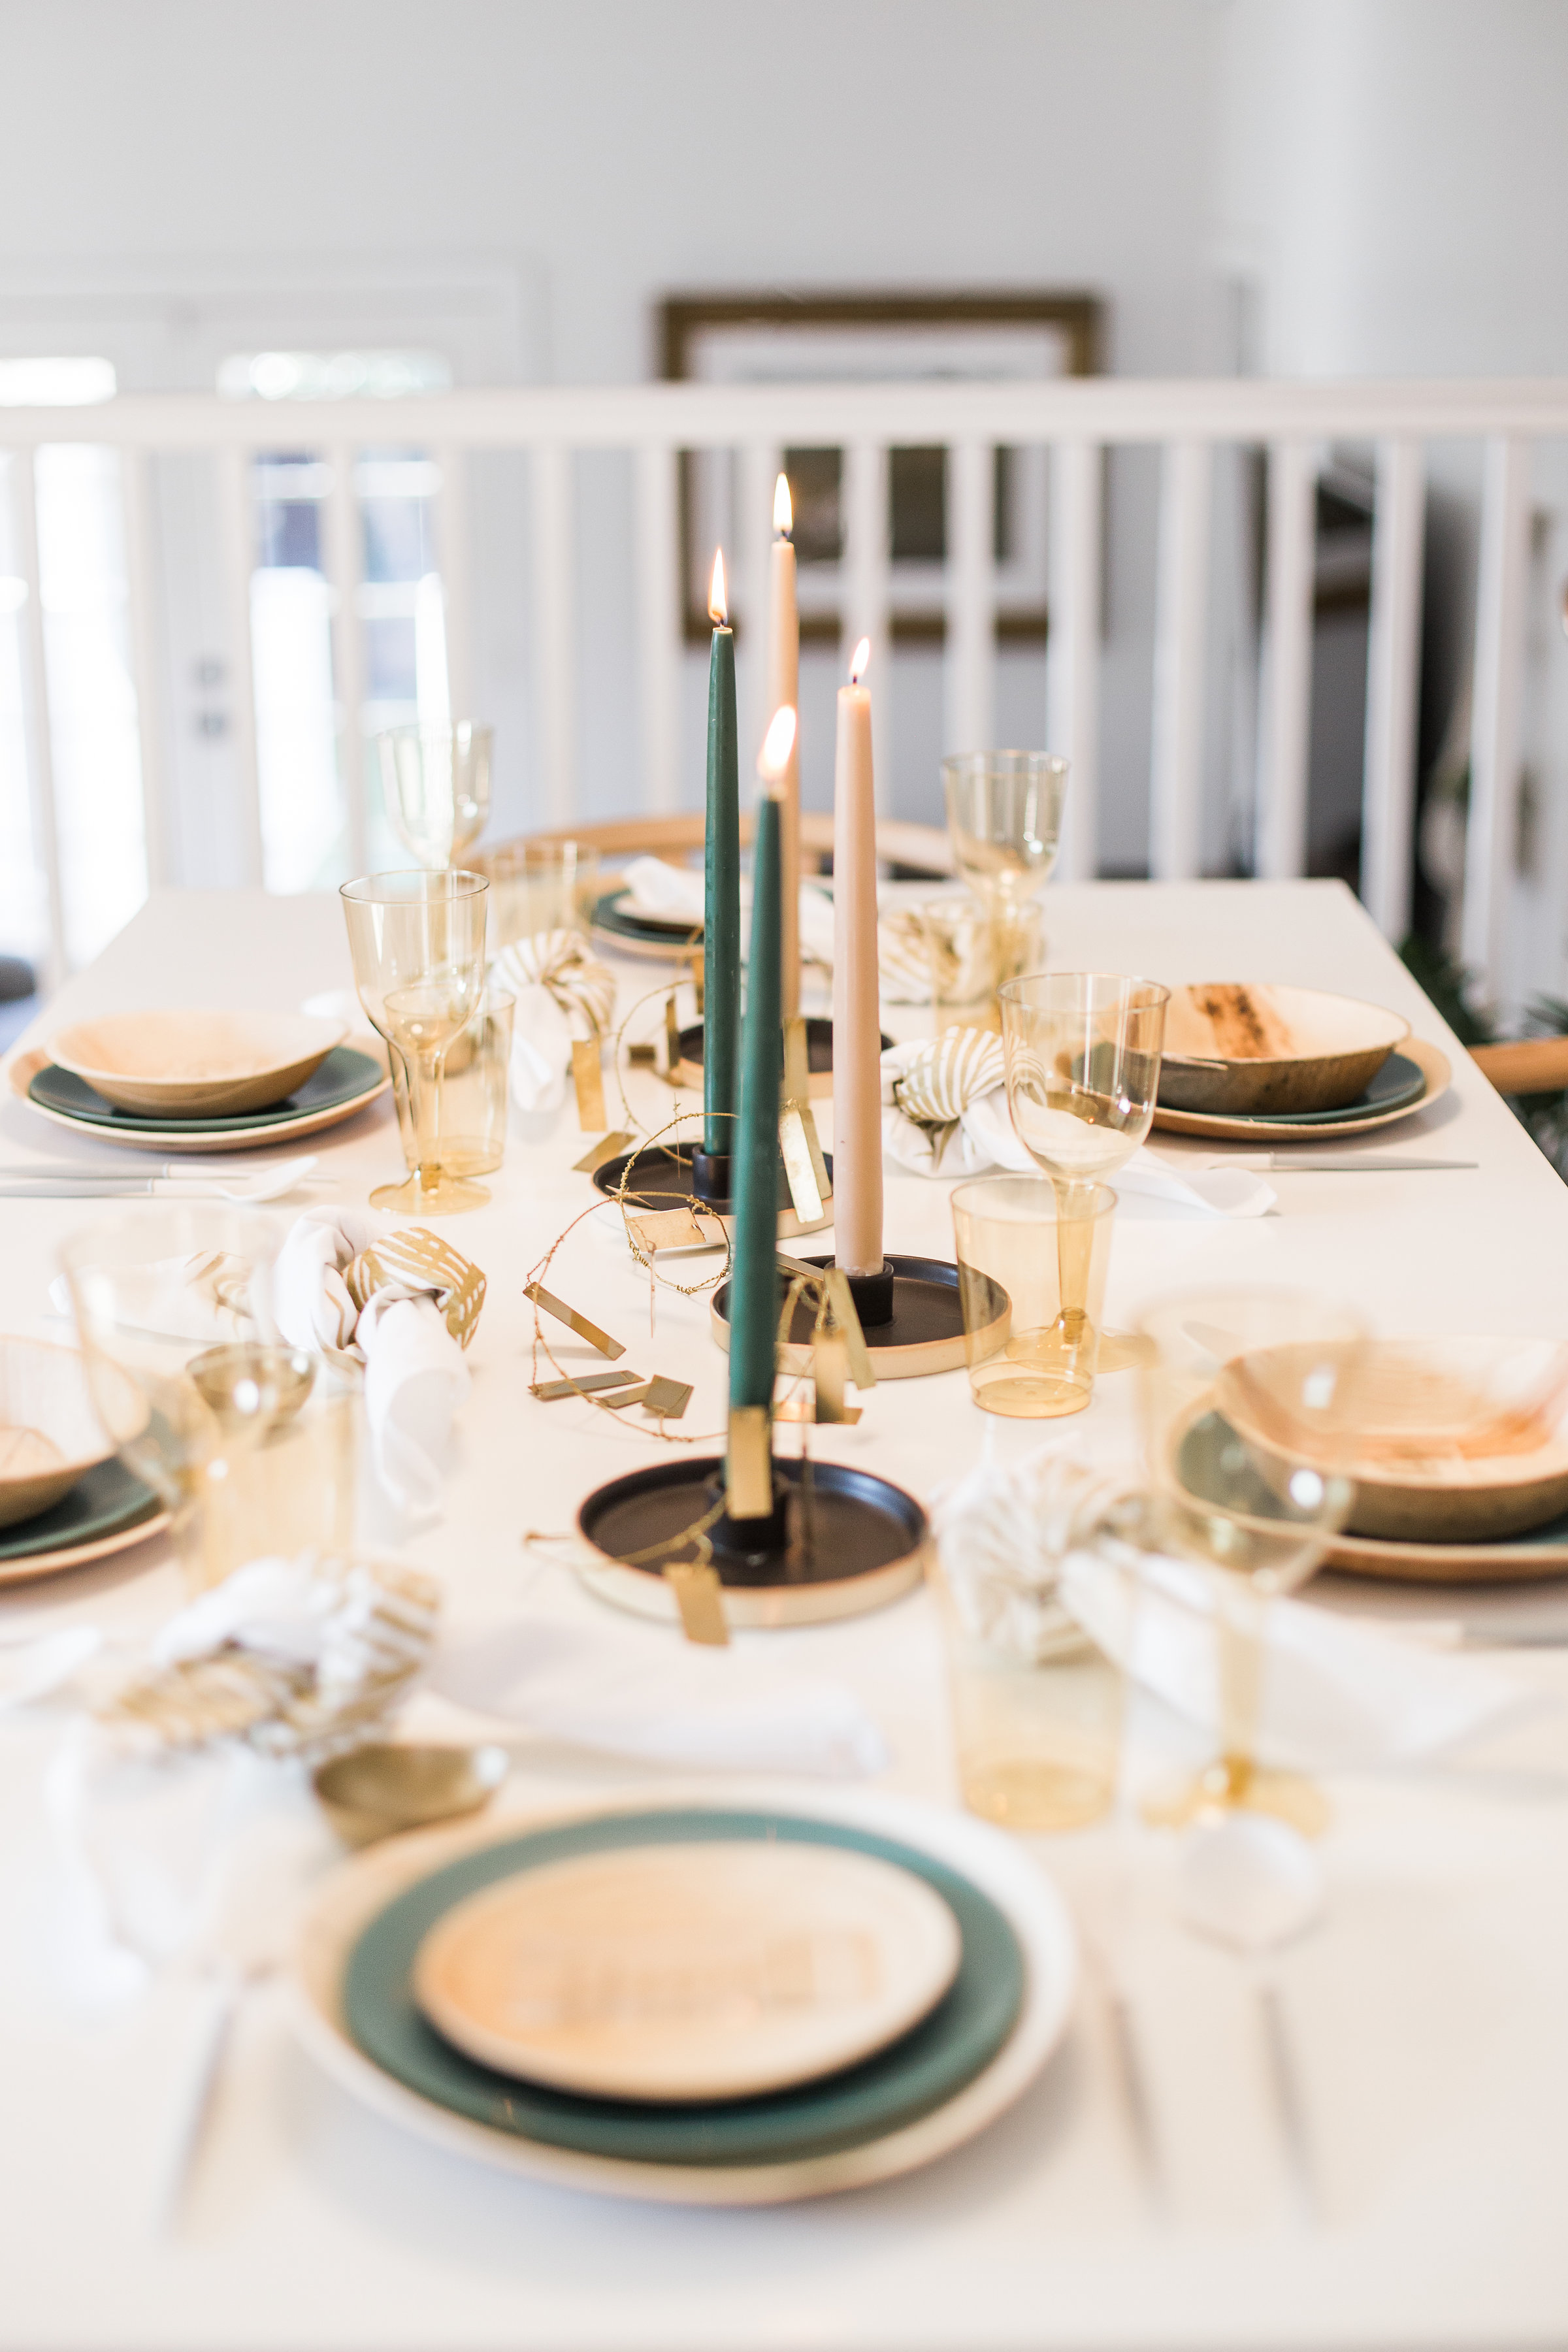 Modern and clean dinner party centerpiece ideas from livingforaged.com